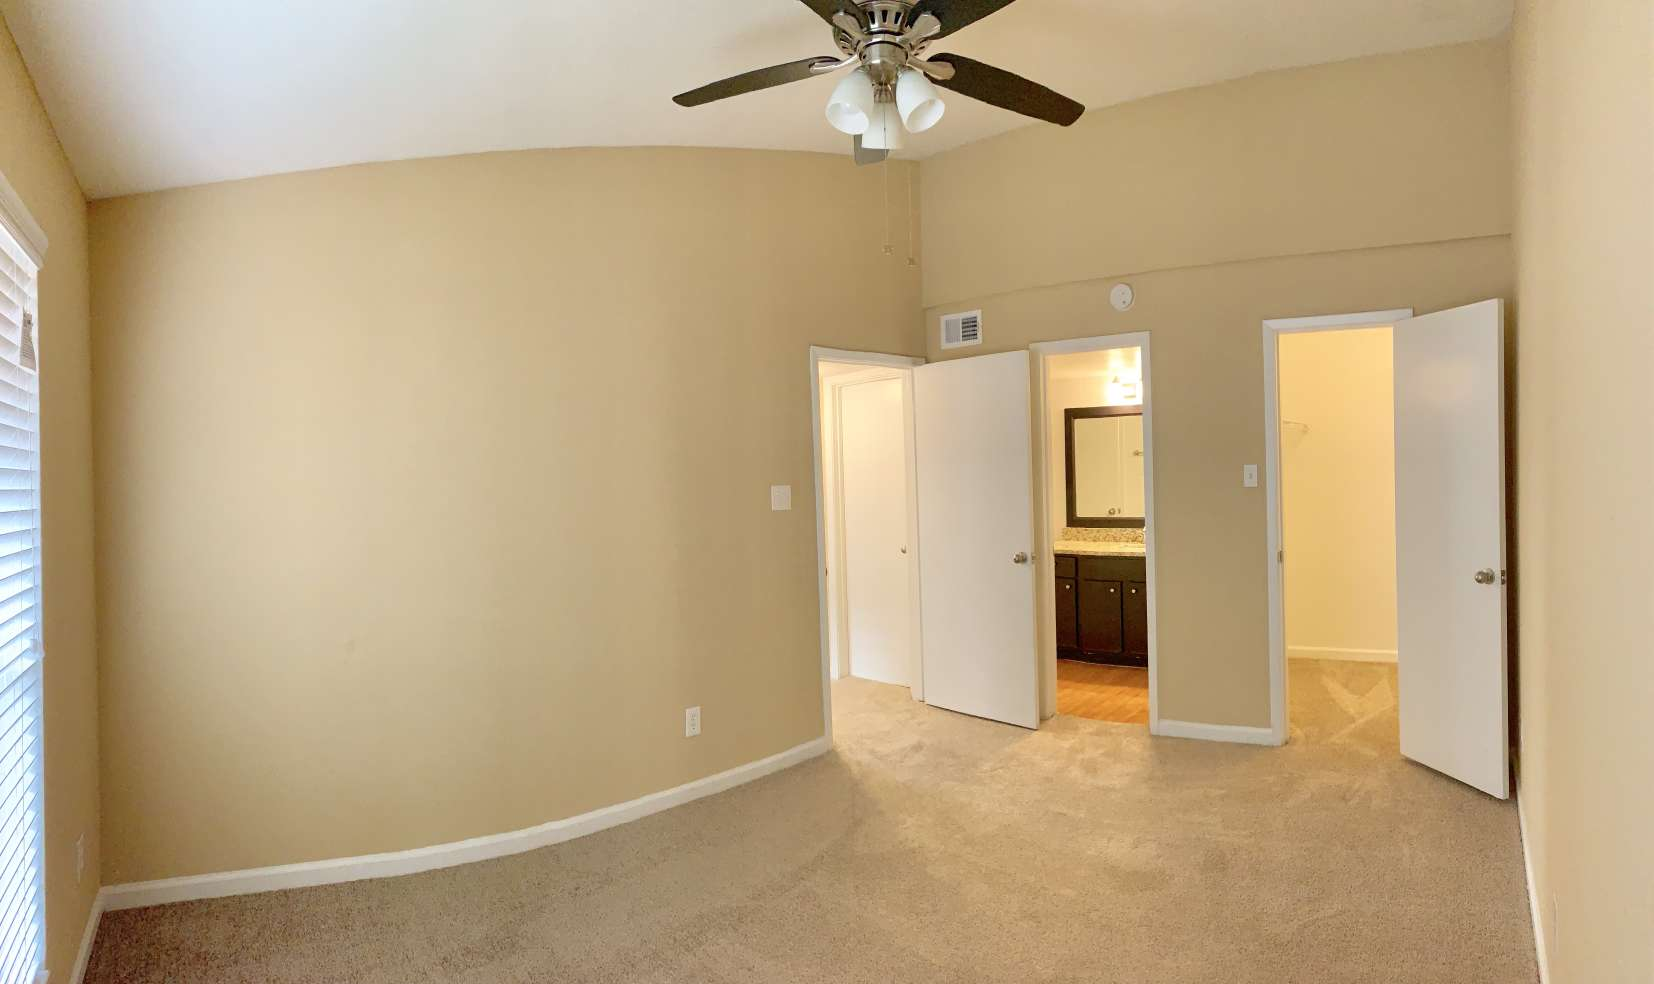 Rooms with Ceiling Fan at Ashford Pointe Apartments in Houston, Texas